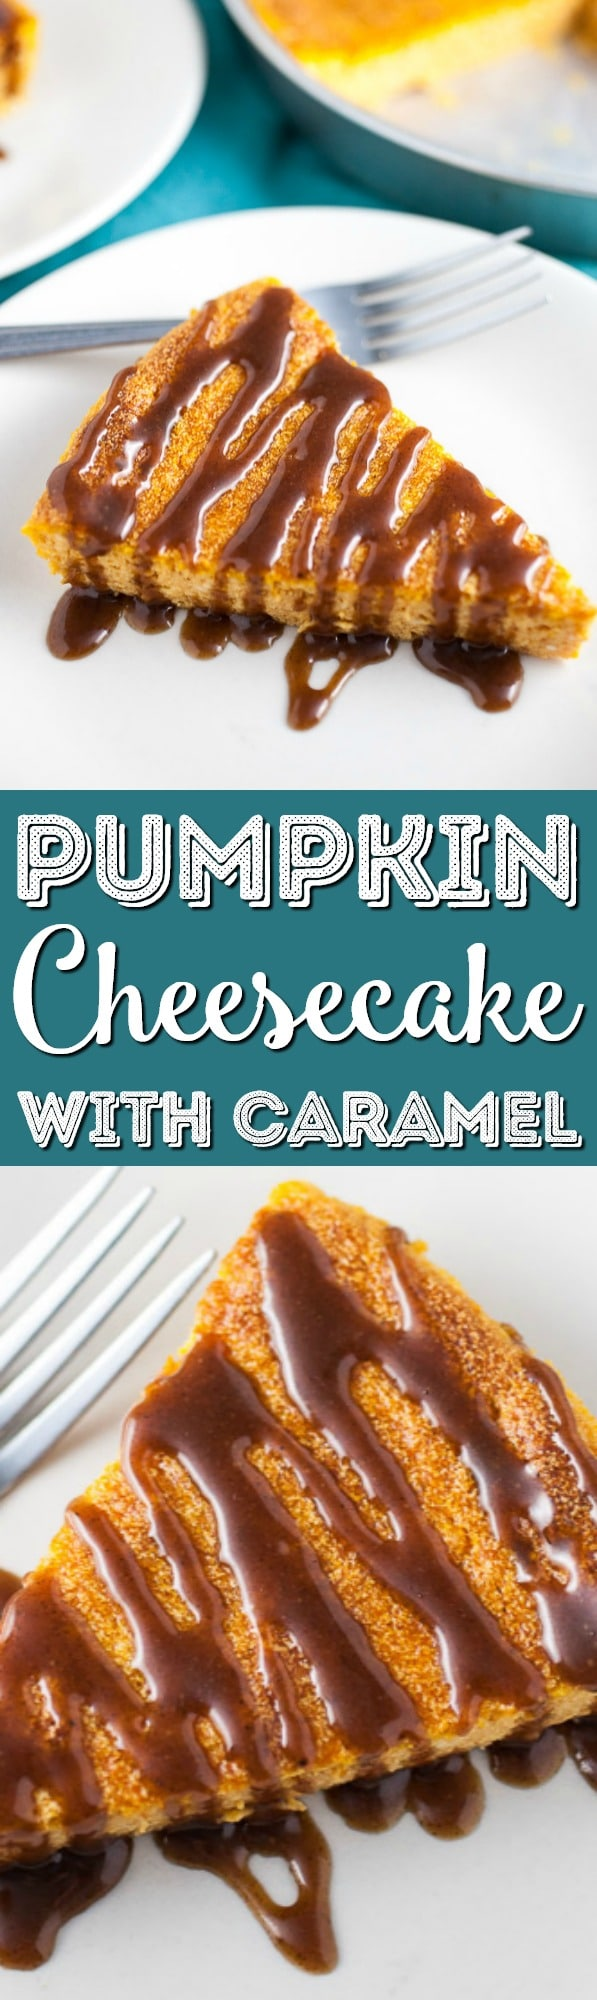 A light and fluffy Japanese-style pumpkin cheesecake recipe topped with a rich cinnamon and nutmeg infused caramel sauce. The perfect easy fall dessert! via @sugarandsoulco